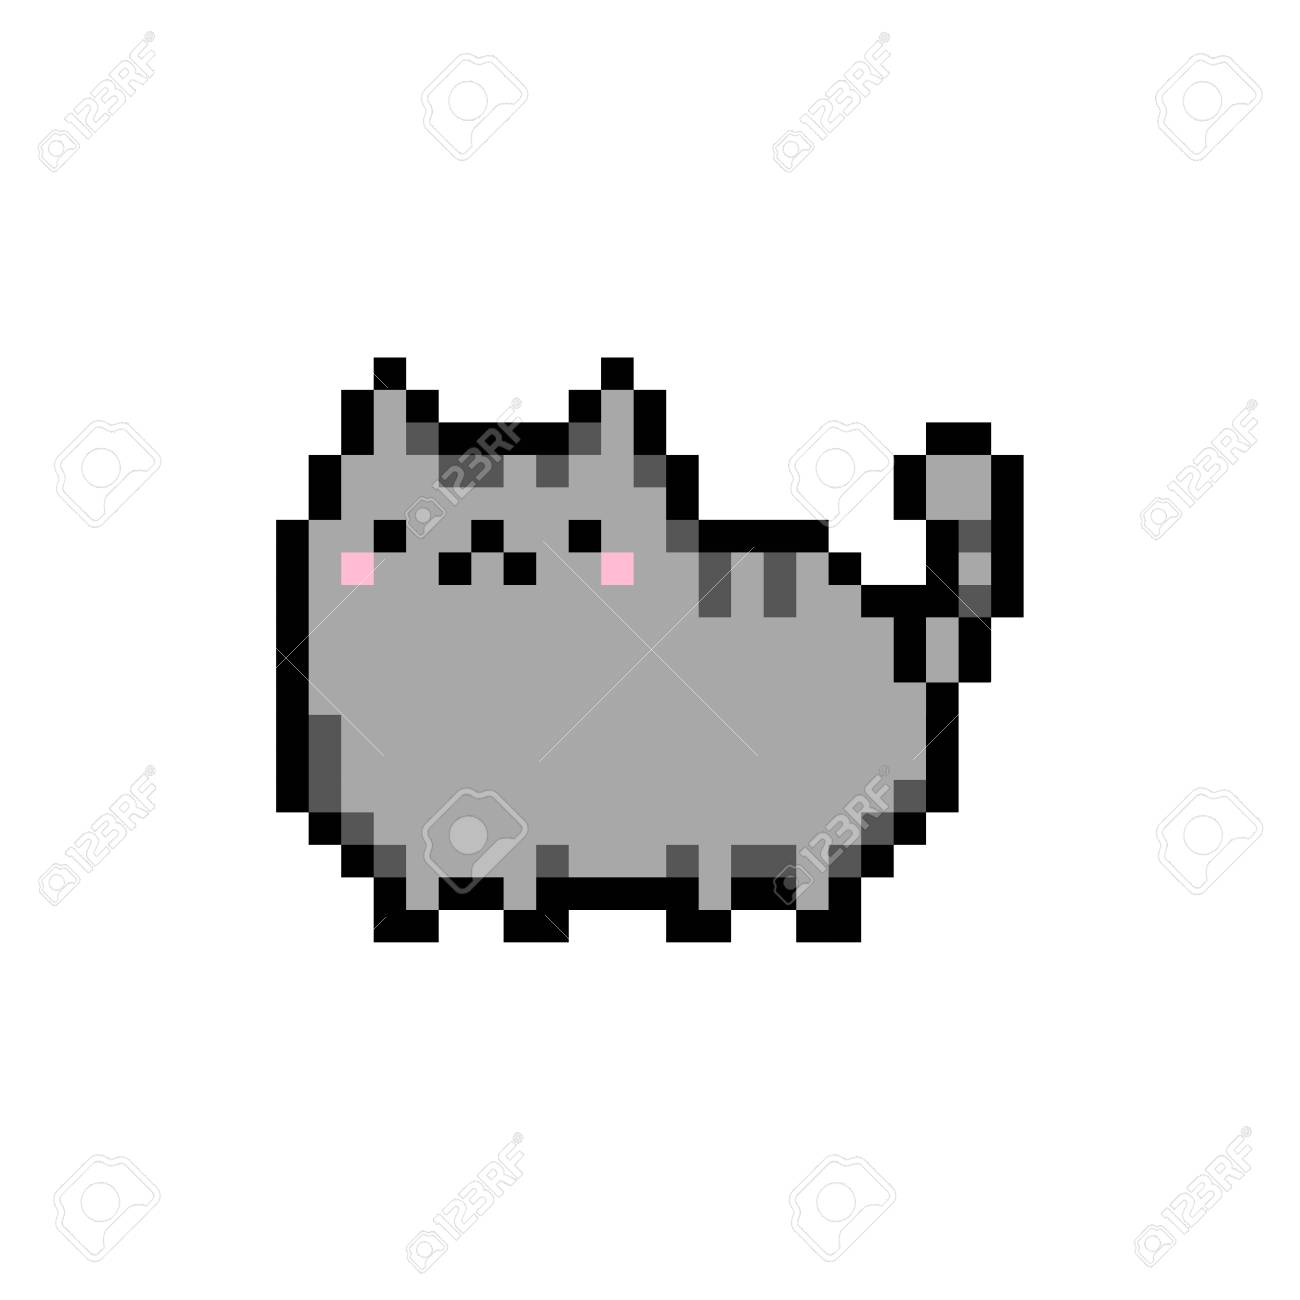 Mignon Chaton Domestique Animal Pixel Art Illustration Vectorielle Isolé